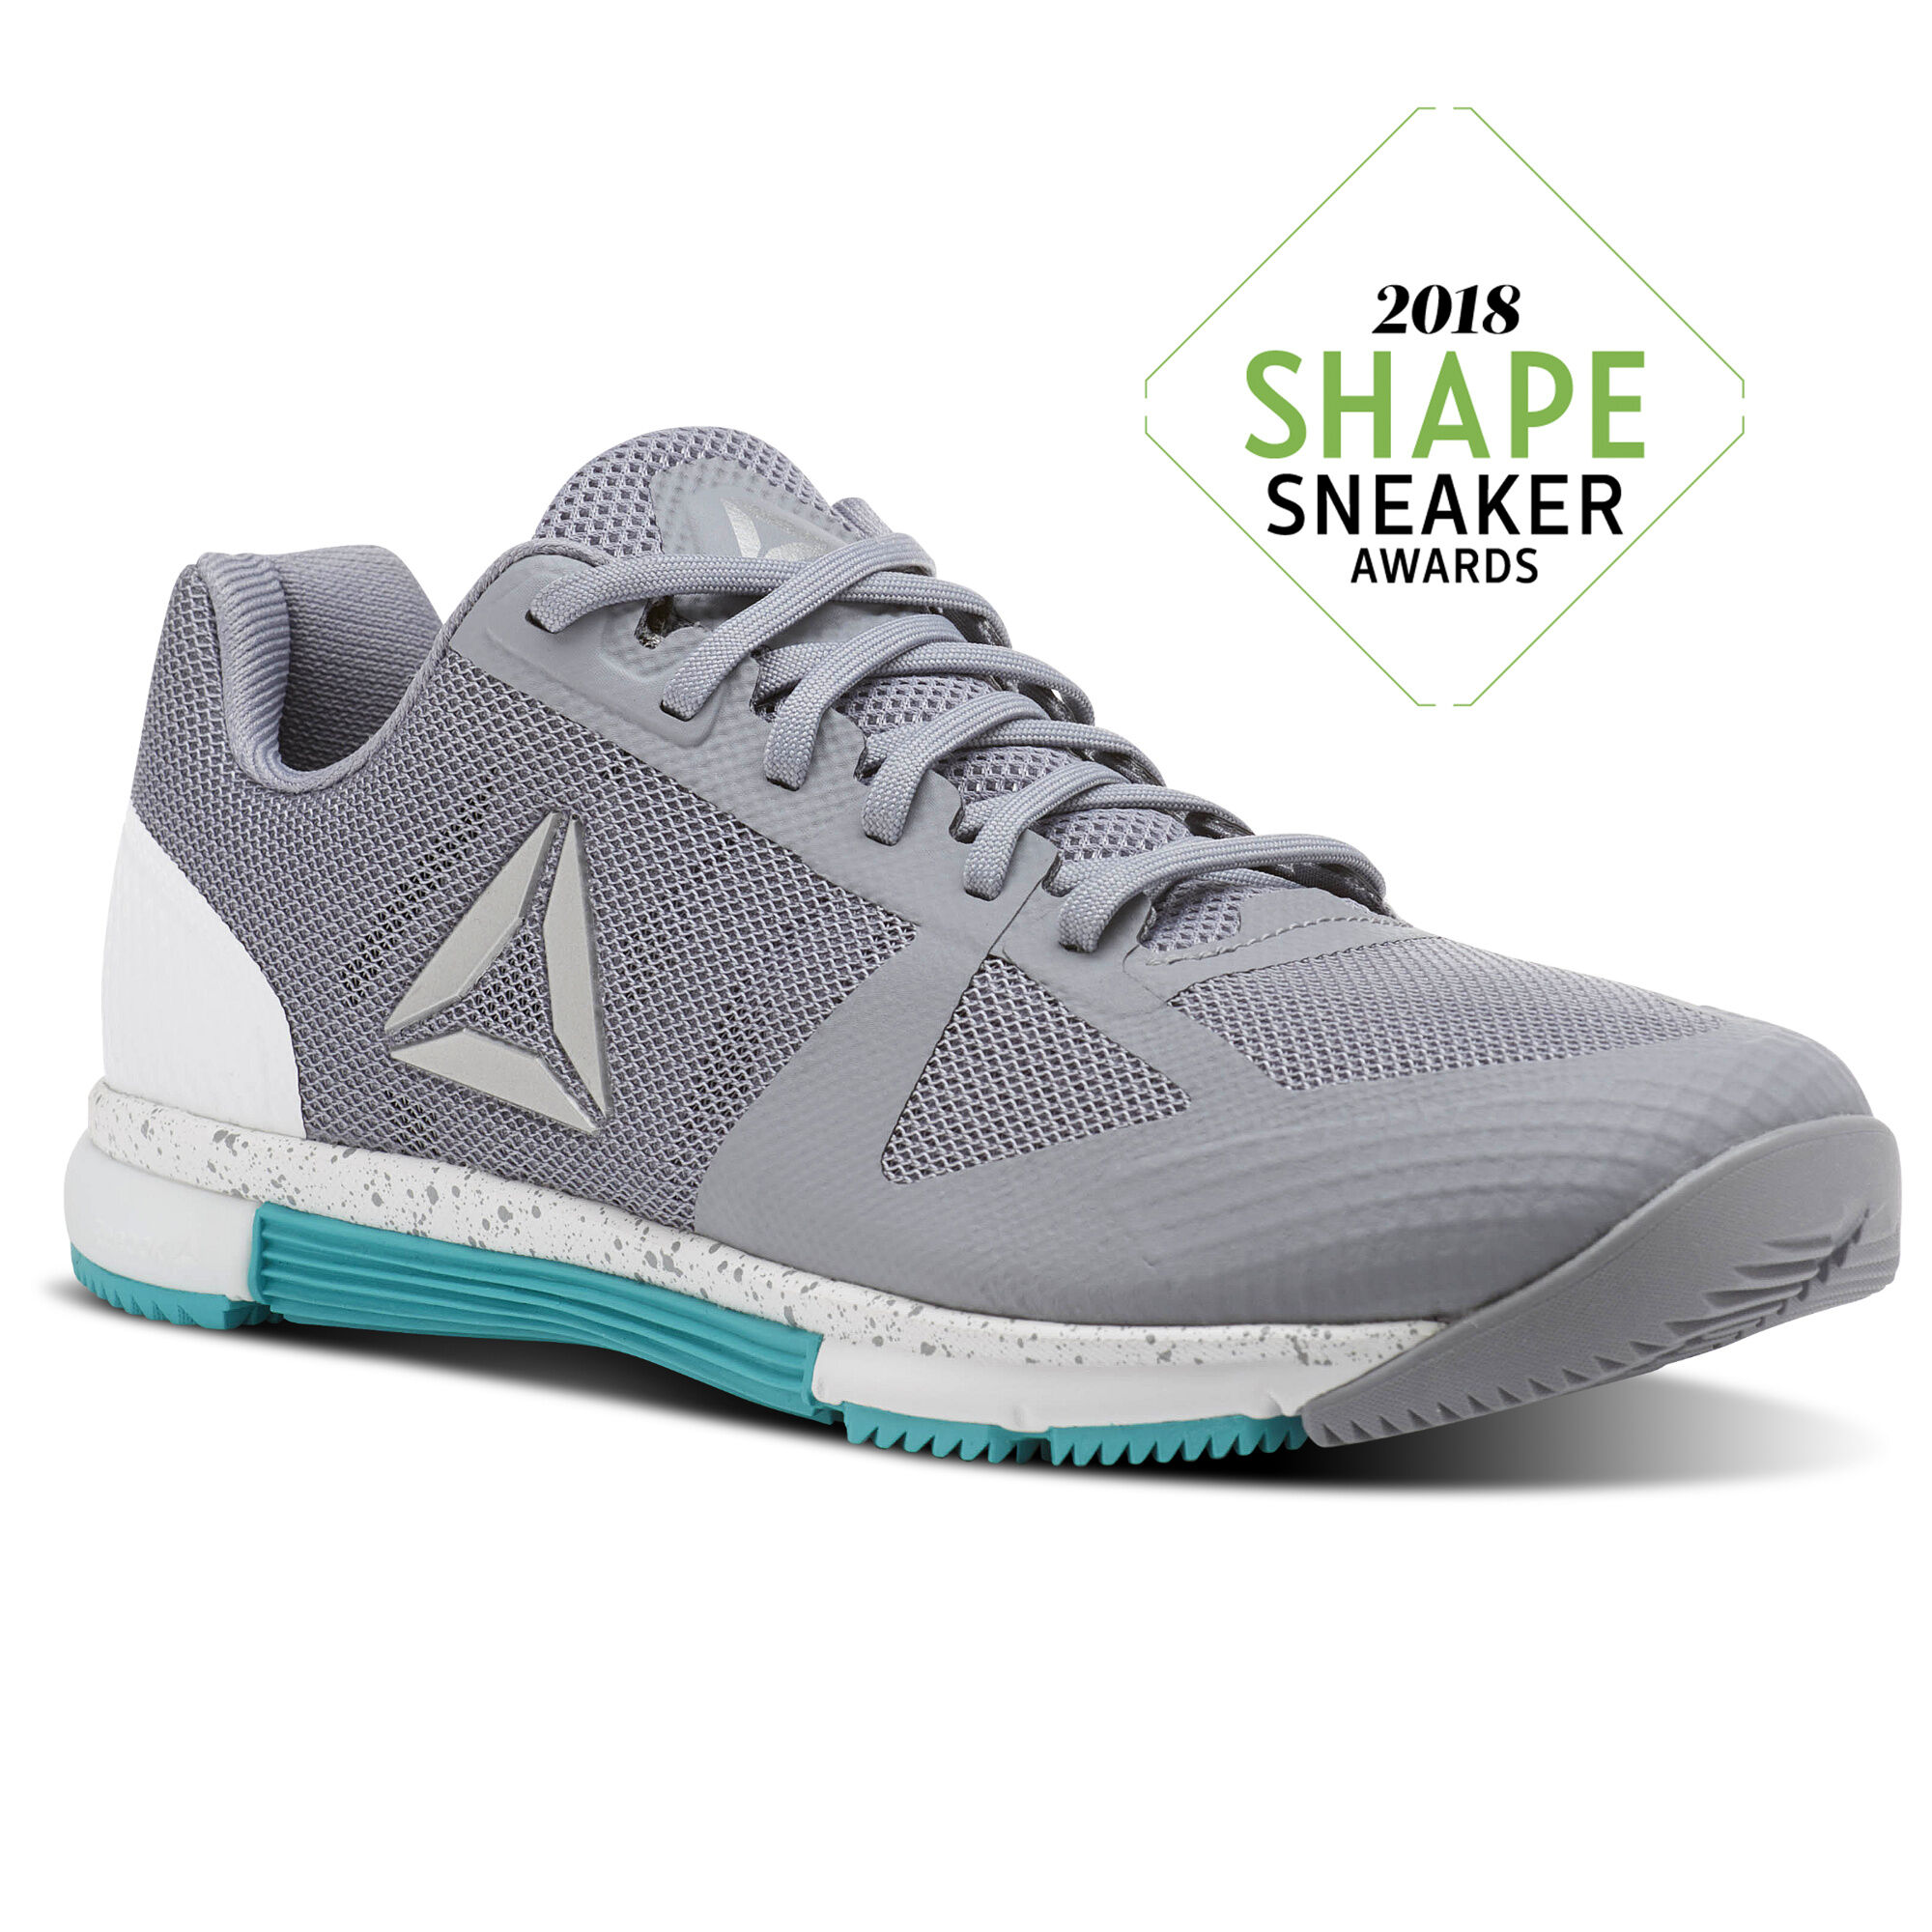 sports shoes 21c08 adba6 ... uk reebok reebok speed tr 2.0 cool shadow solid teal white cn1012 f27a6  cbc52